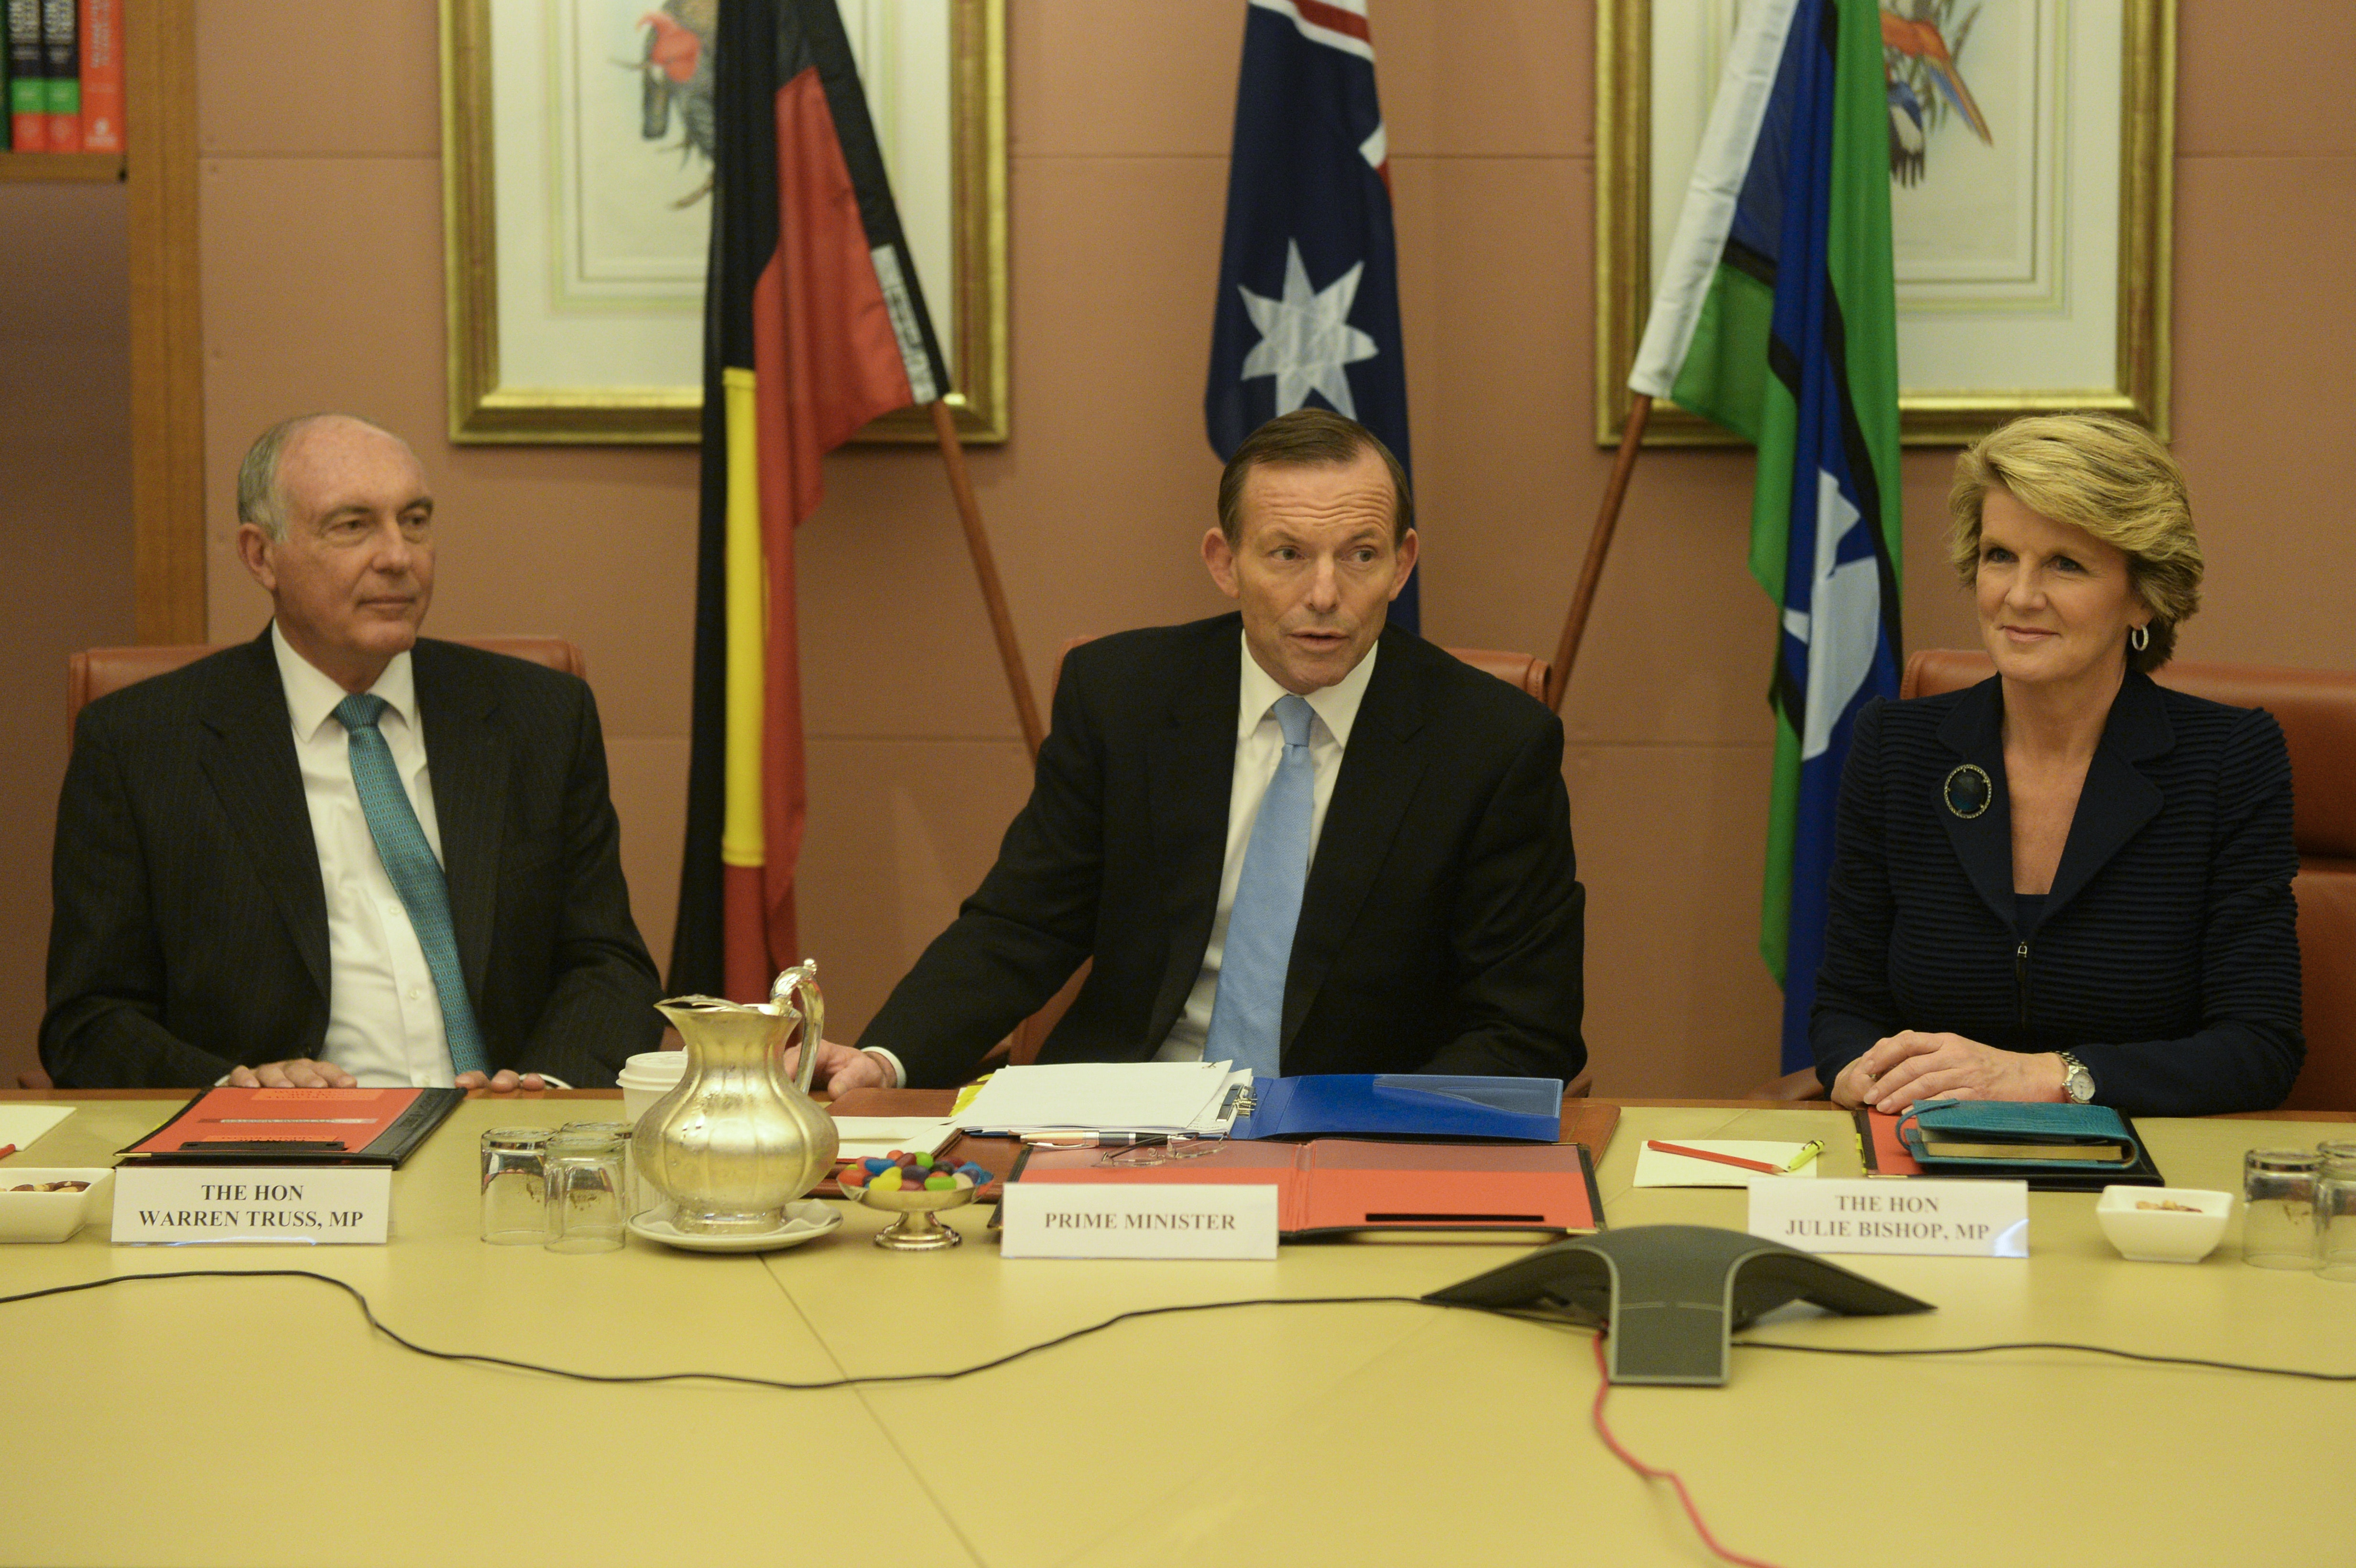 Cabinet Leaks Currently Remain A Question Of Rogue Members And Discipline  And Not Routine Government Practice. AAP/Lukas Coch